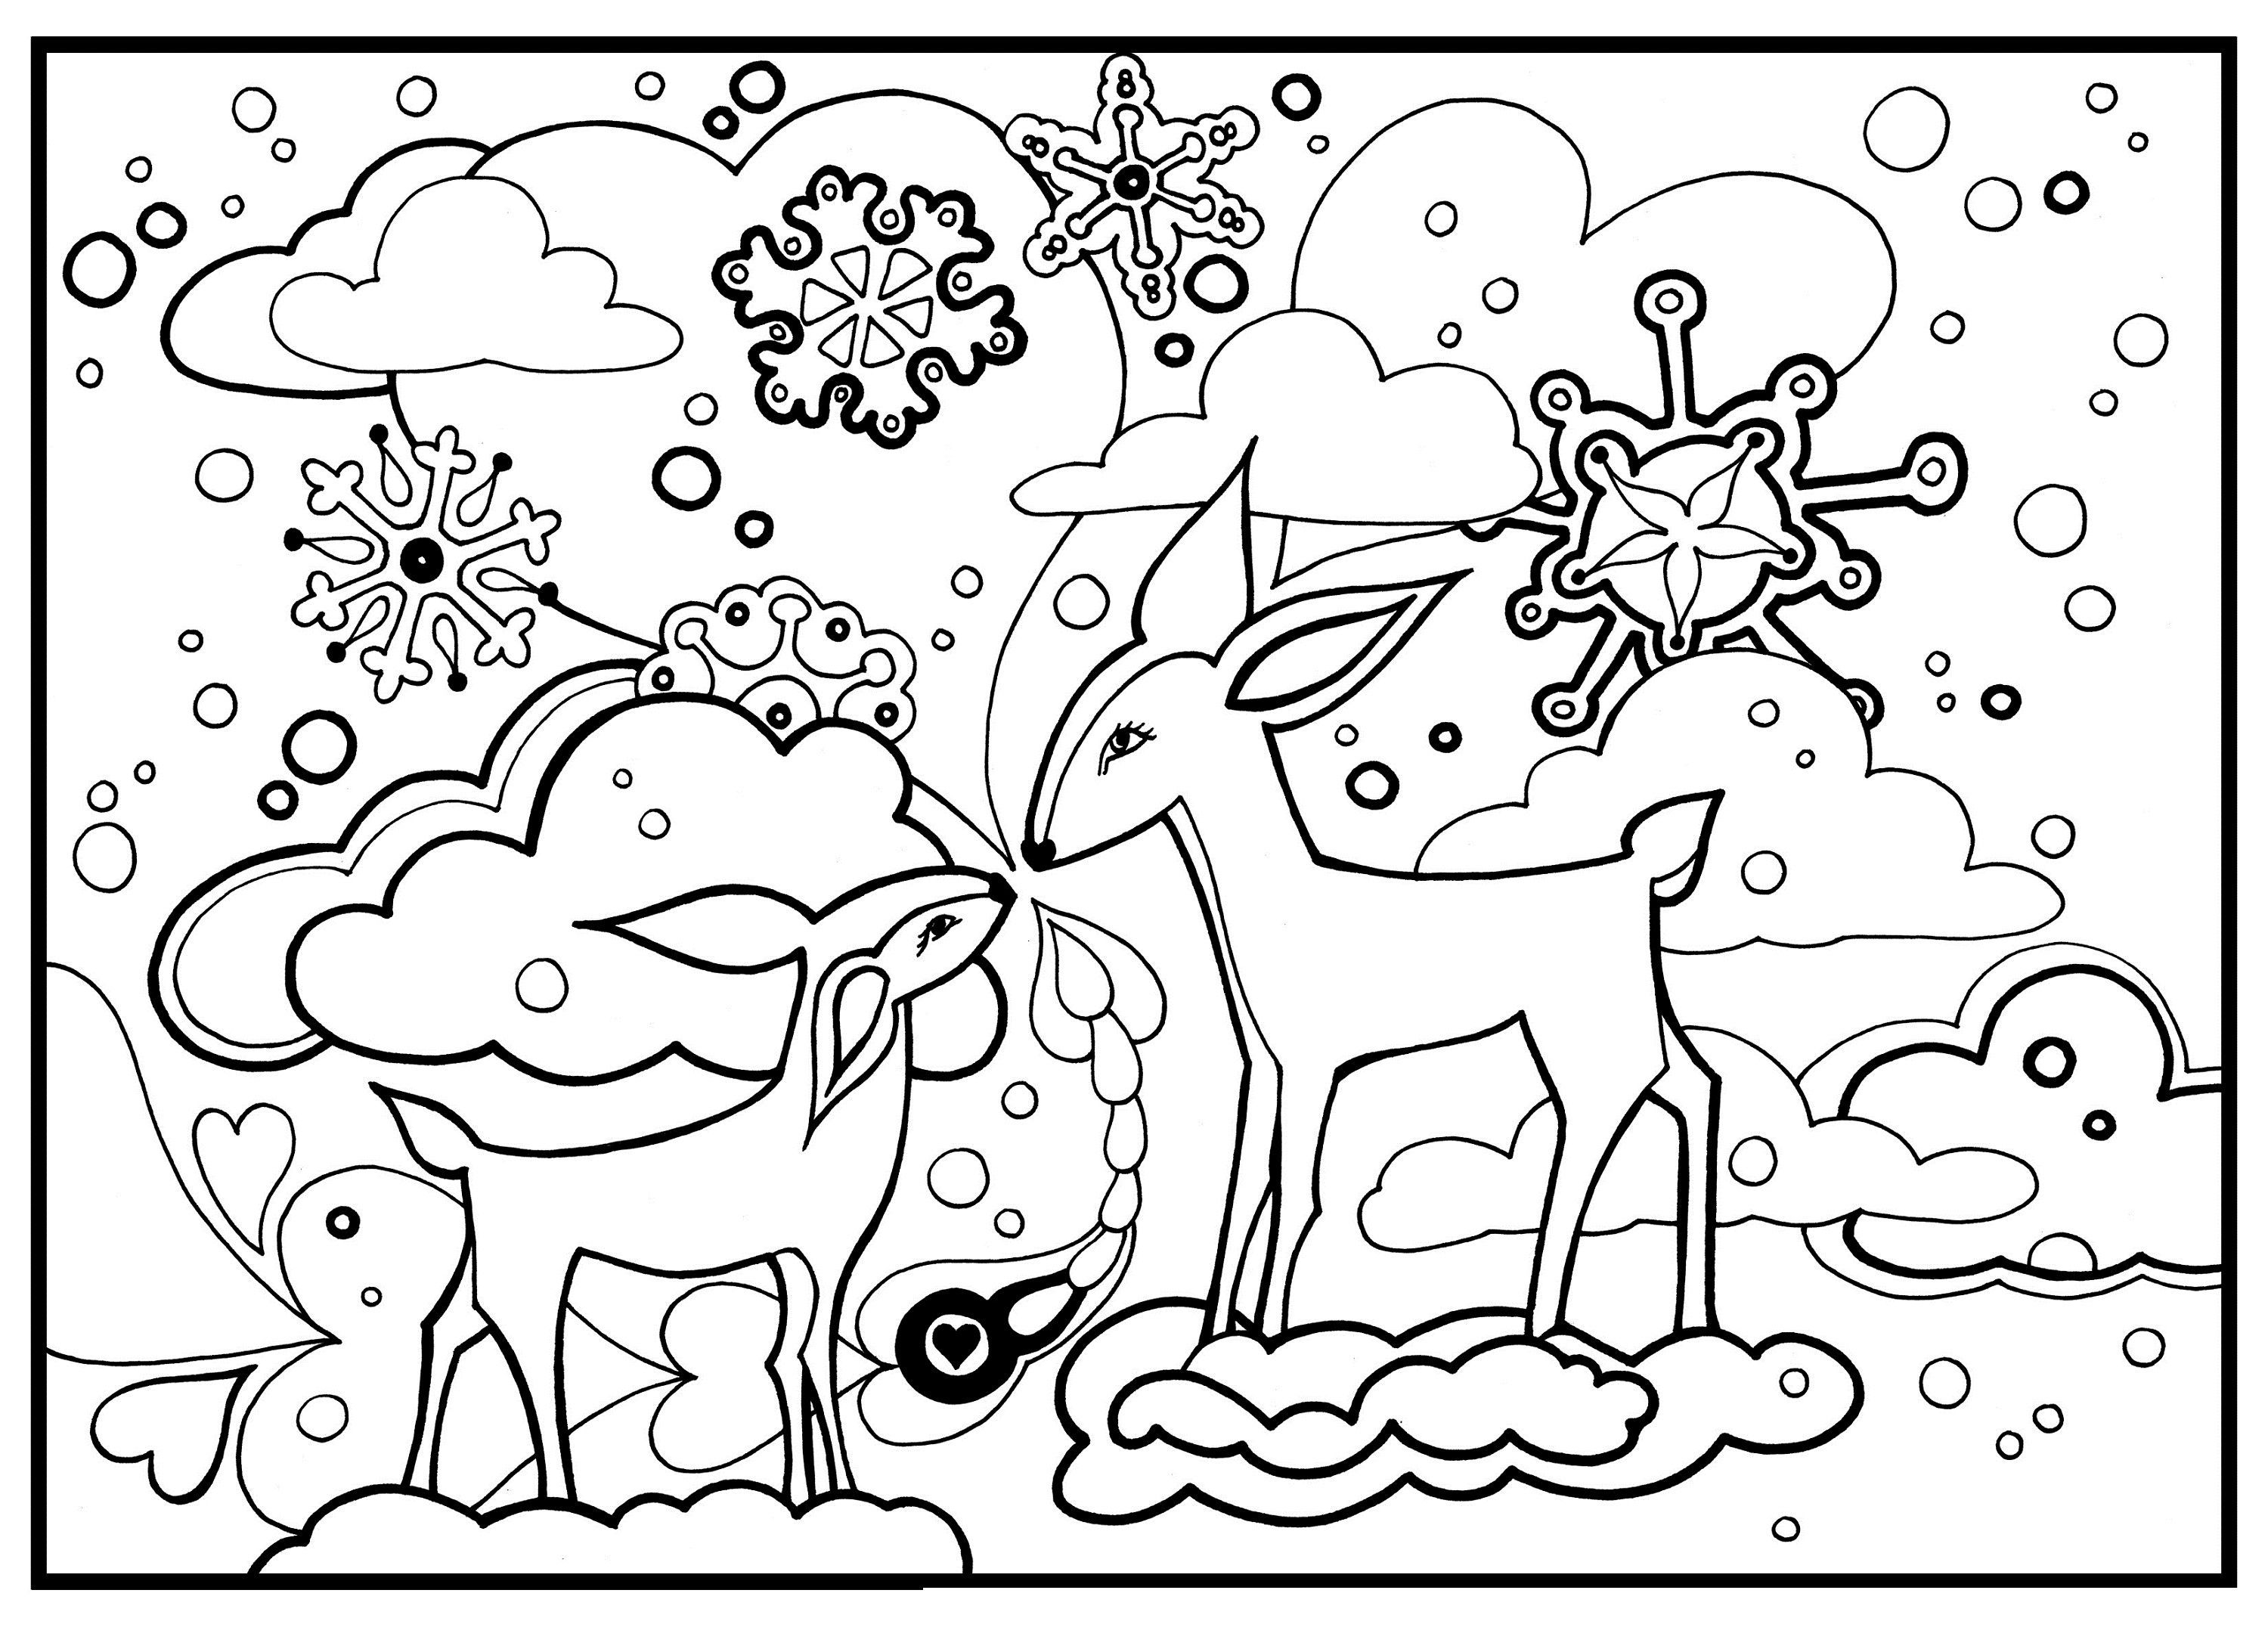 Free Coloring Pages Christmas Christmas Coloring Pages Animal Coloring Pages Coloring Pages Nature